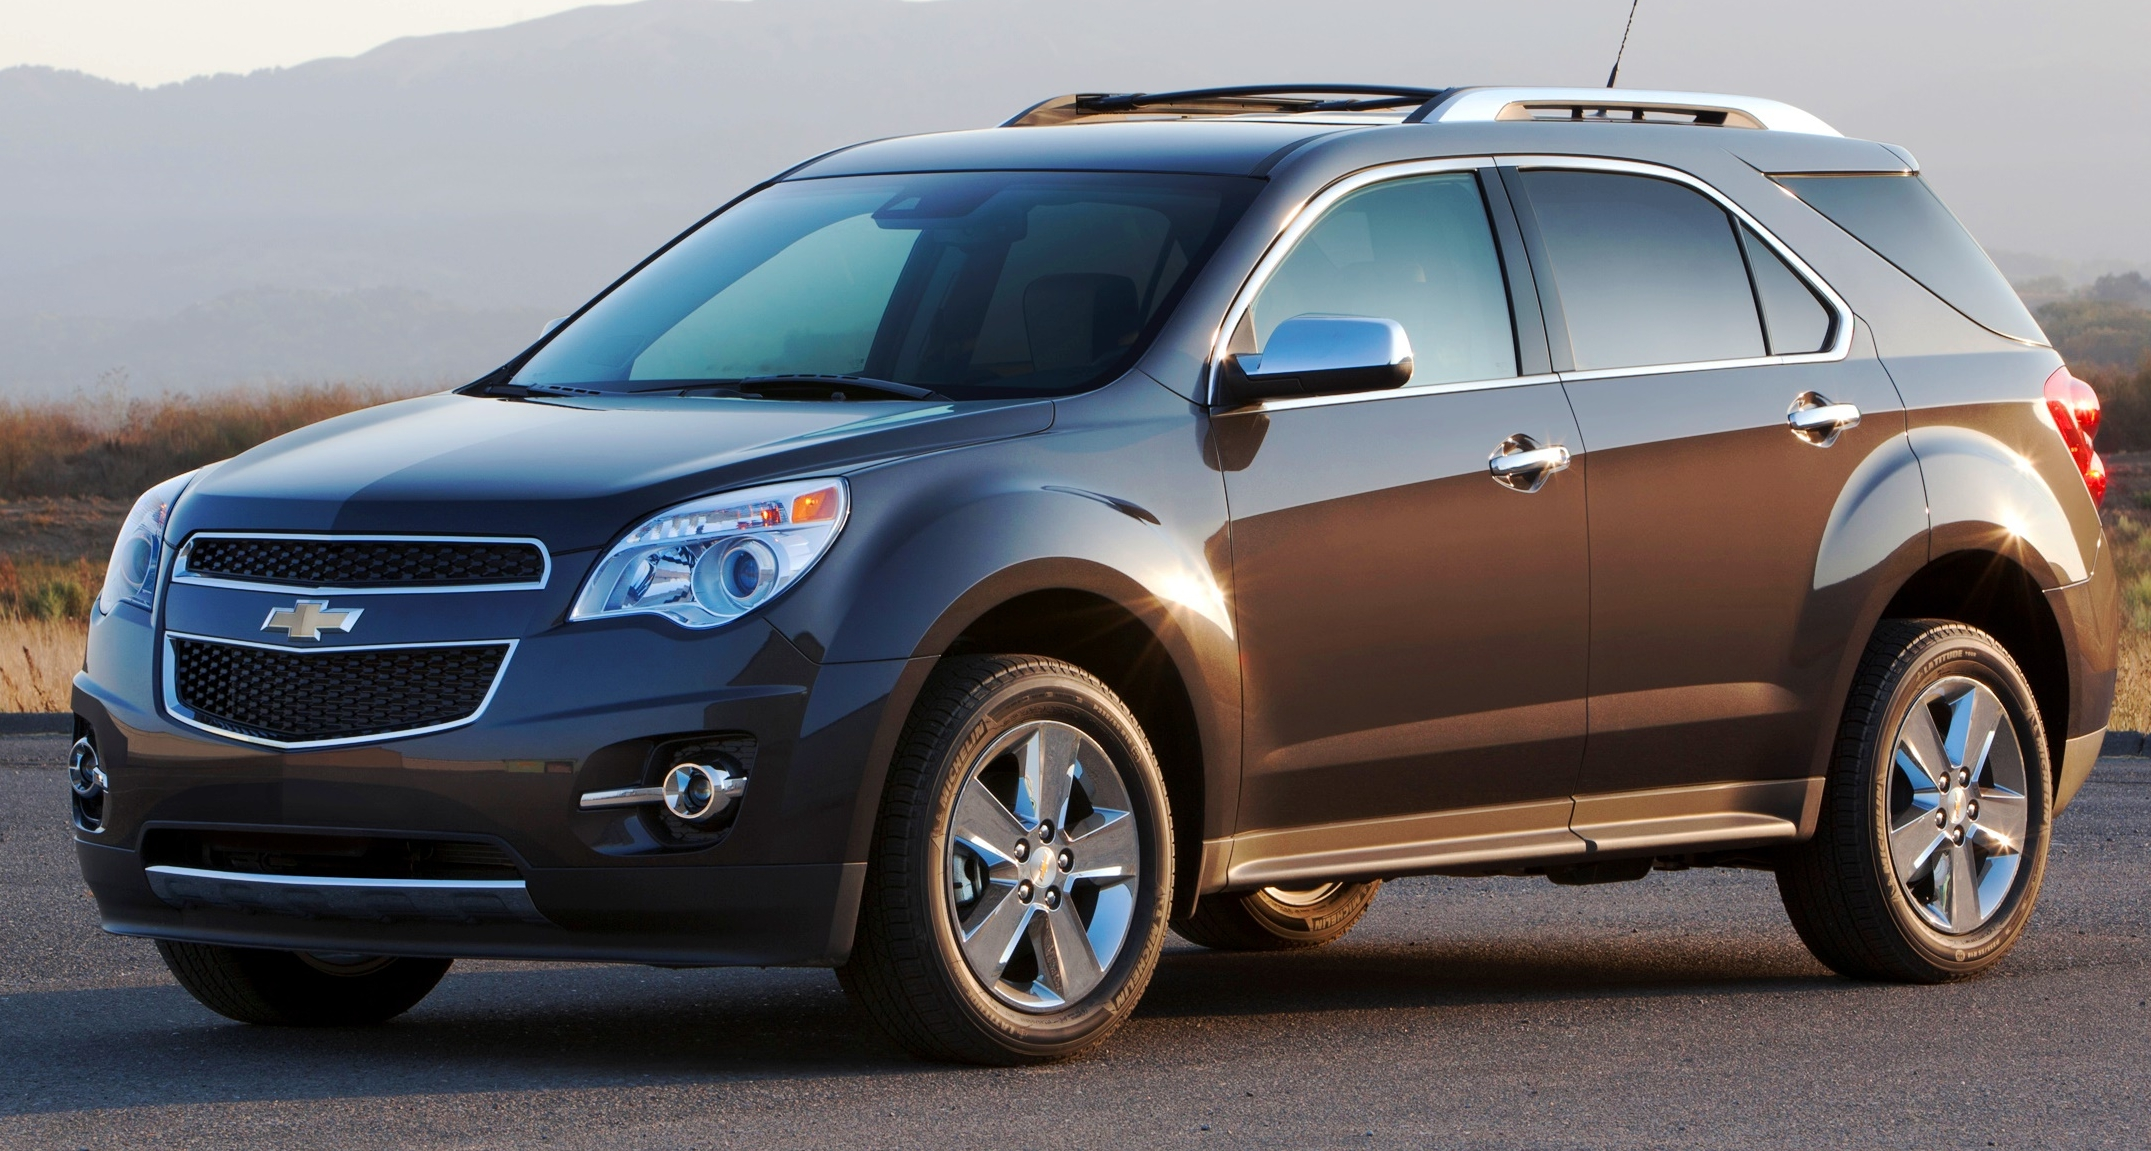 Fast Awd Cars >> 2014 Chevrolet Equinox | Top Speed